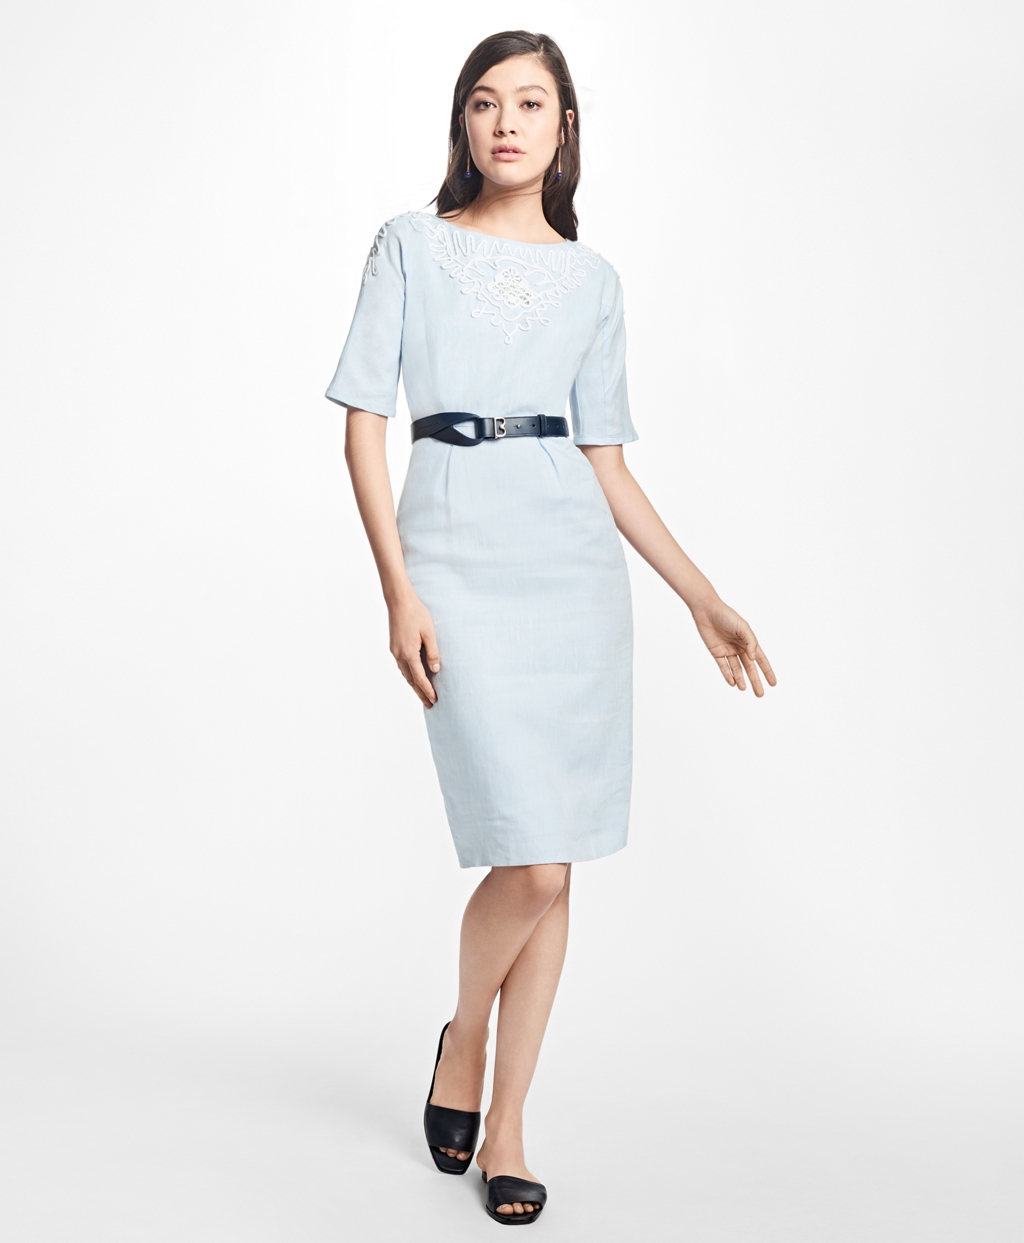 500 Vintage Style Dresses for Sale Brooks Brothers Womens Cord-Embroidered Linen Sheath Dress $89.40 AT vintagedancer.com